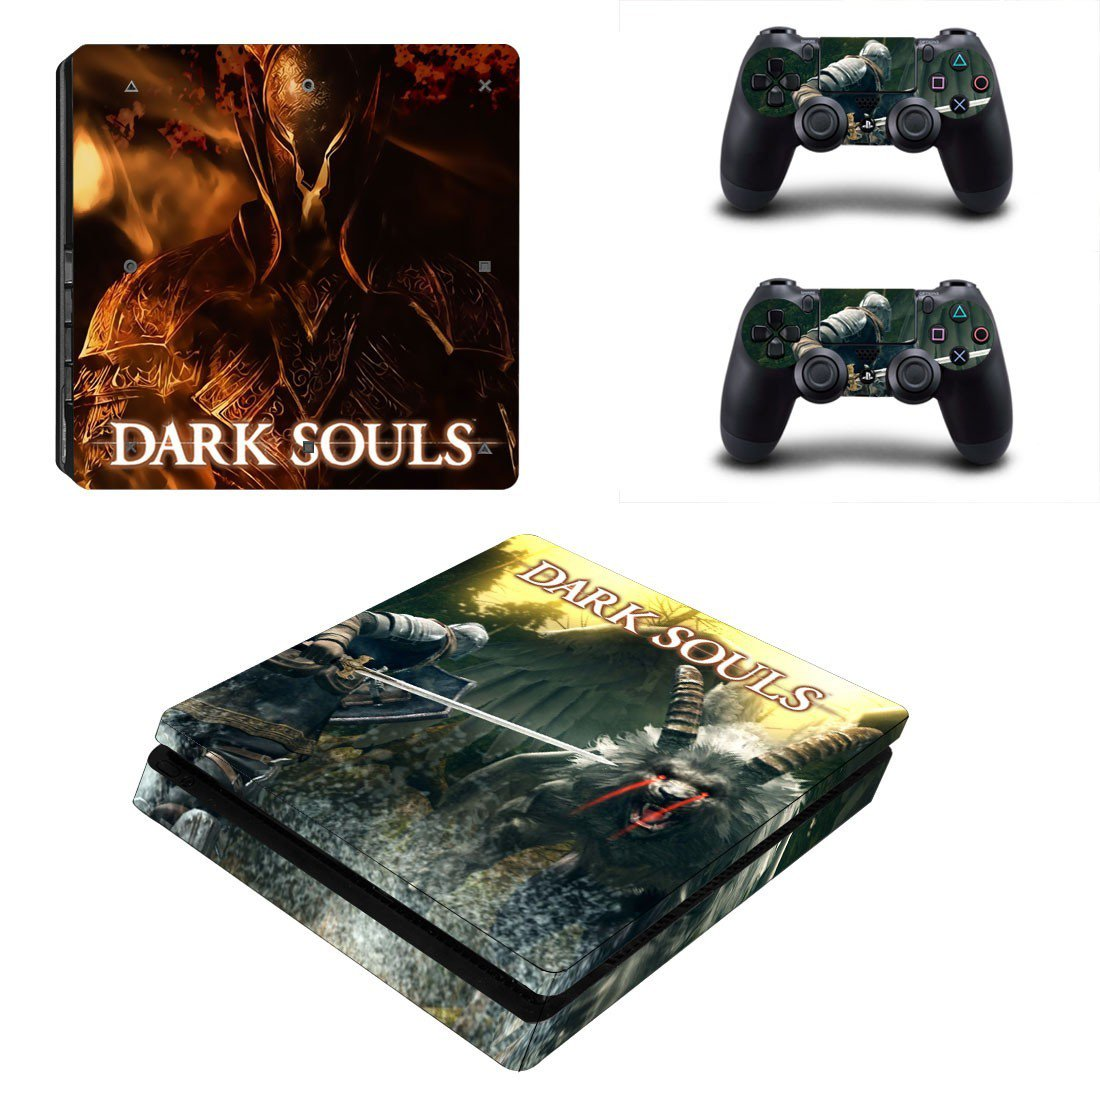 Dark Souls decal skin sticker for PS4 Slim console and controllers